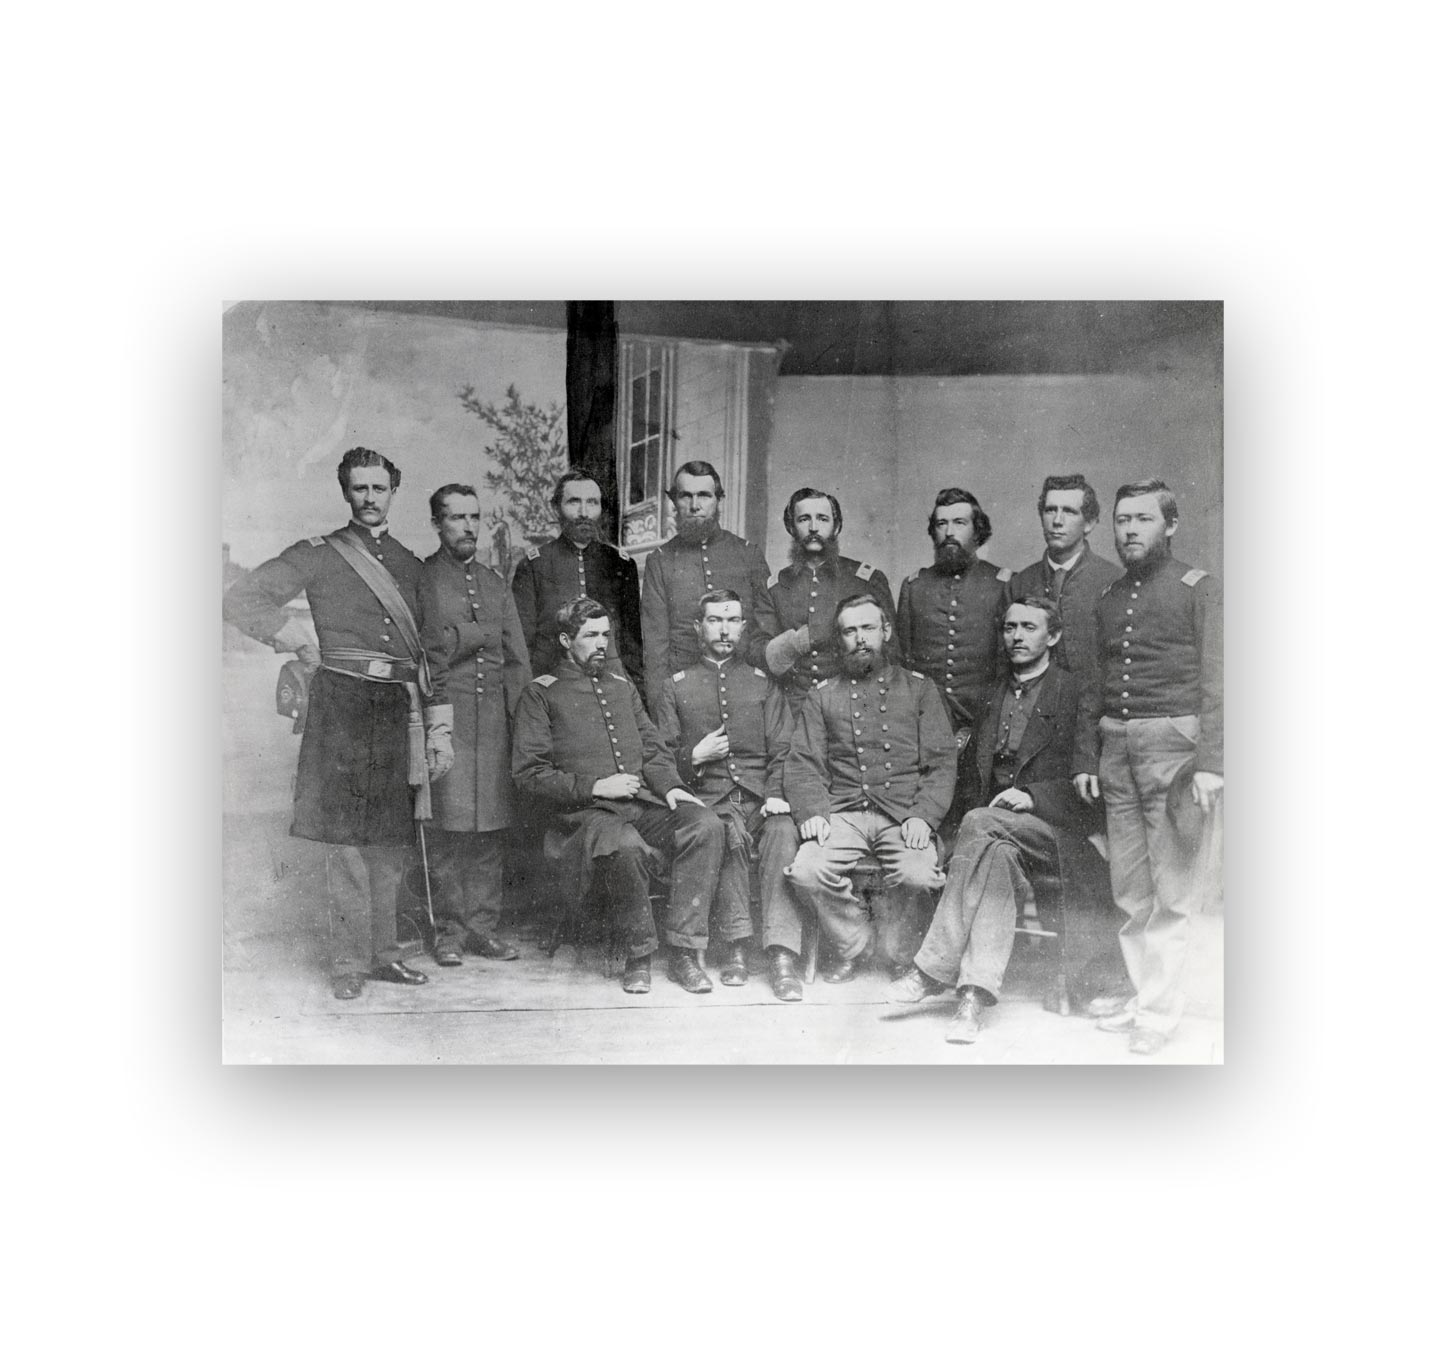 Officers of the 3rd Delaware Regiment, May 1862